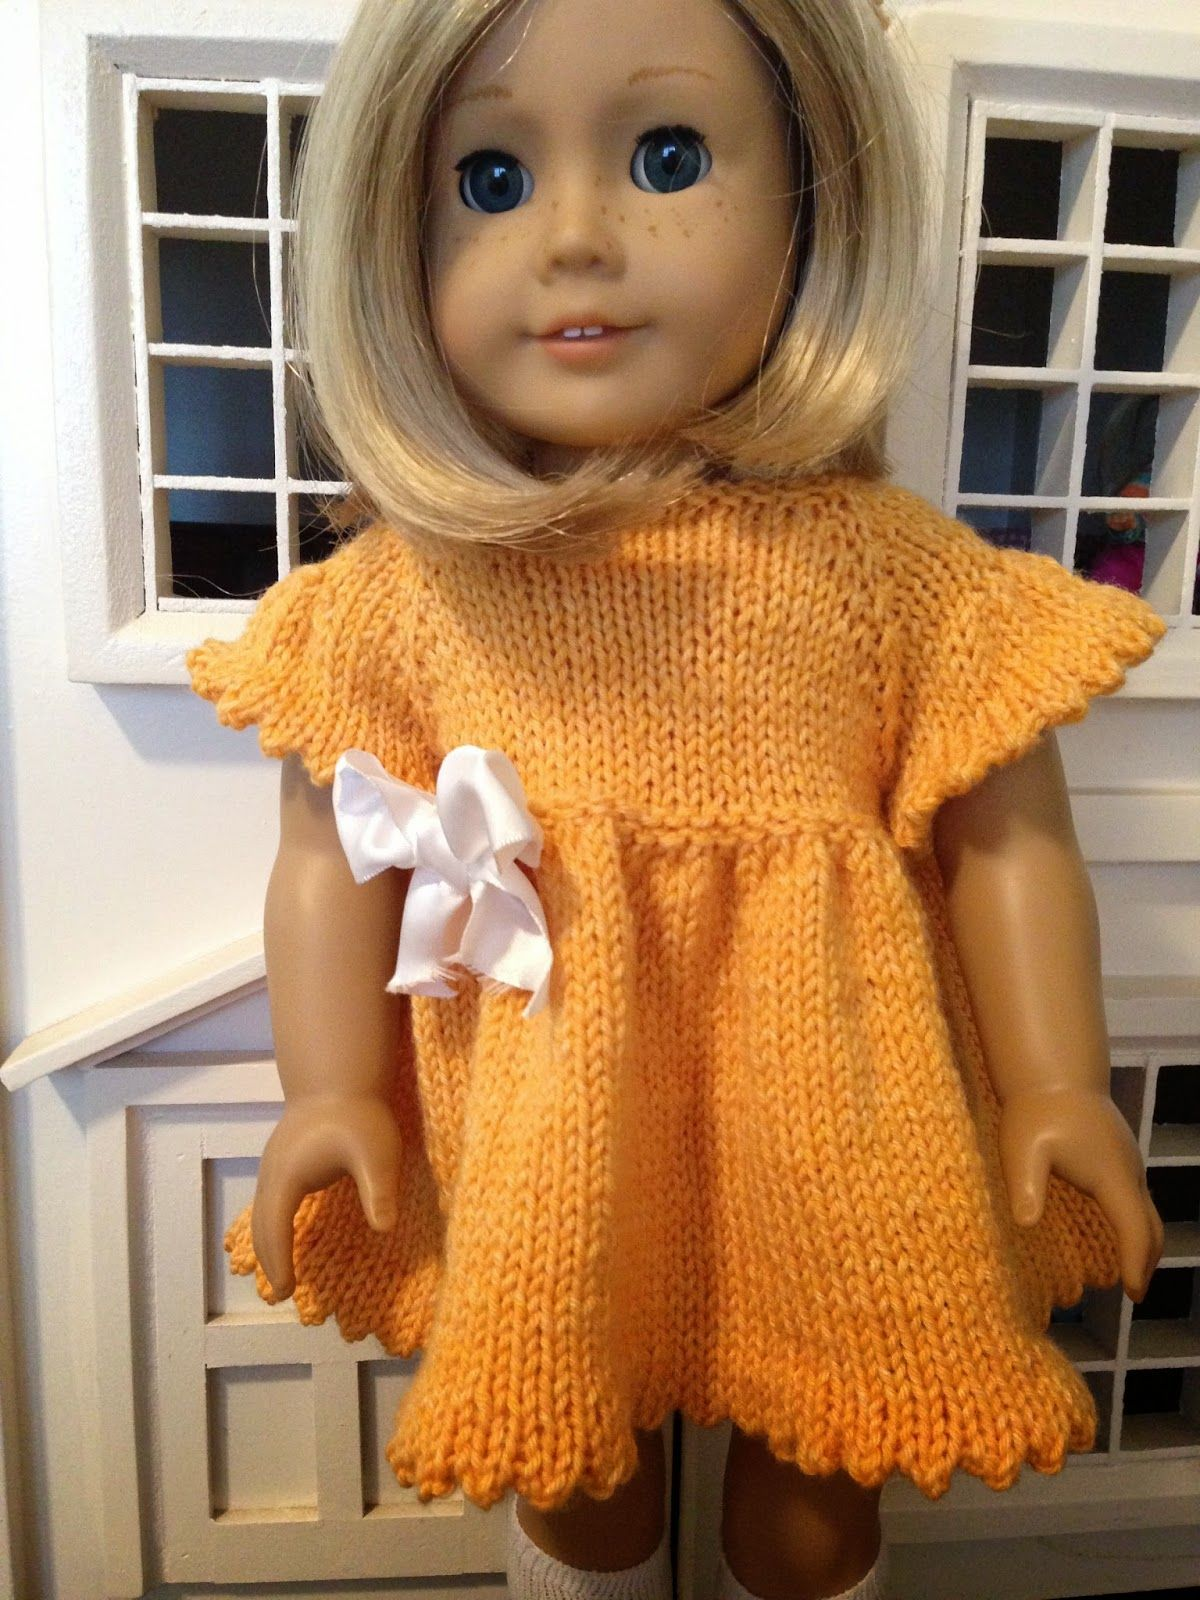 Heres kit modeling her new dress sunshine lollipops knit top heres kit modeling her new dress sunshine lollipops knit top down in one piece in rowan baby merino silk dk bankloansurffo Images